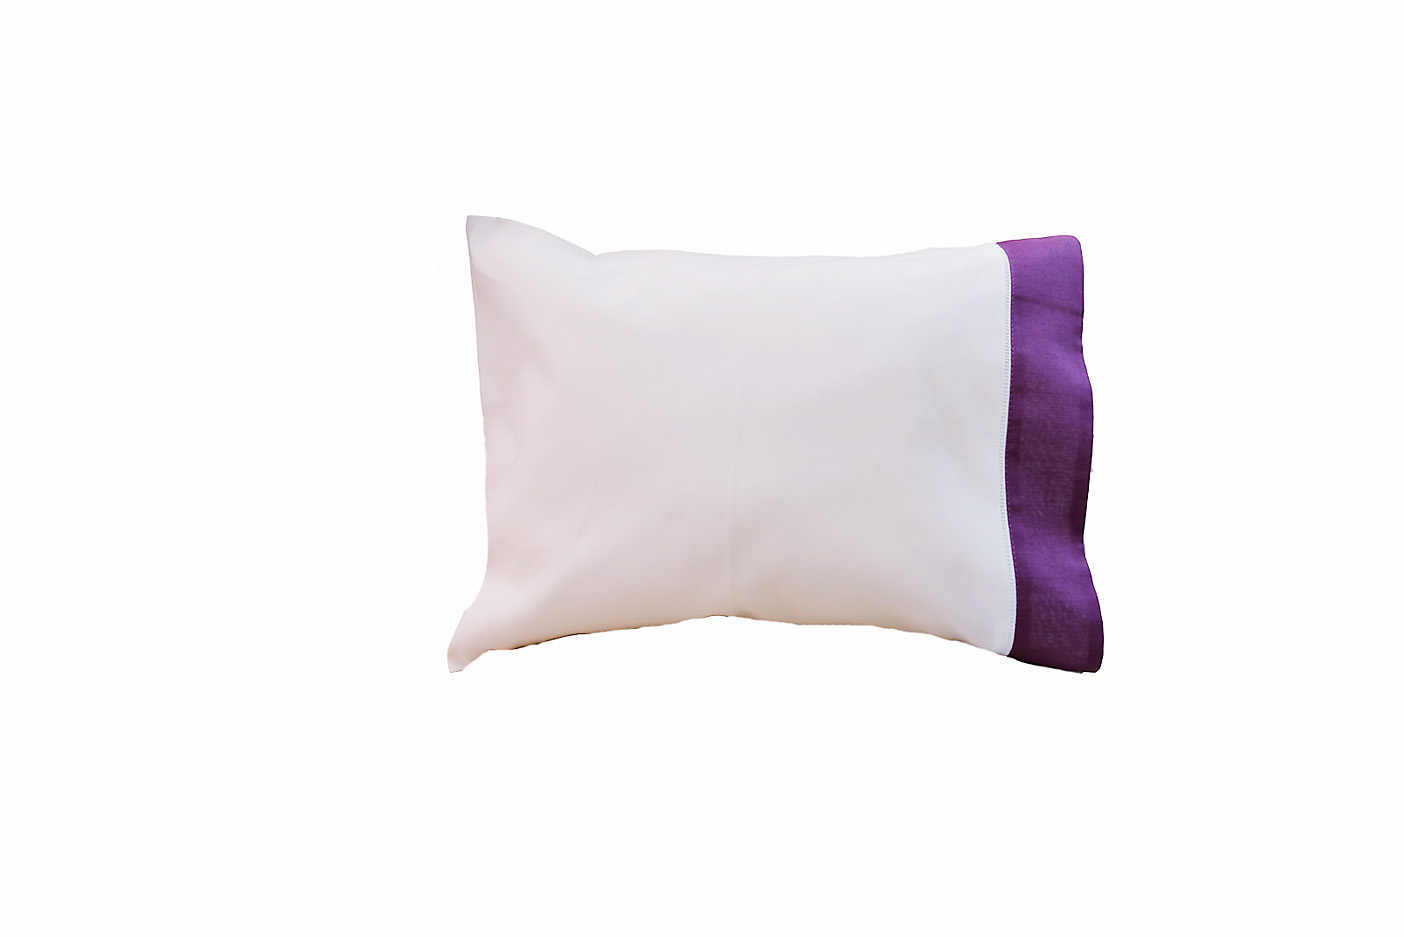 baby pillowcases with Purple colored trimmed